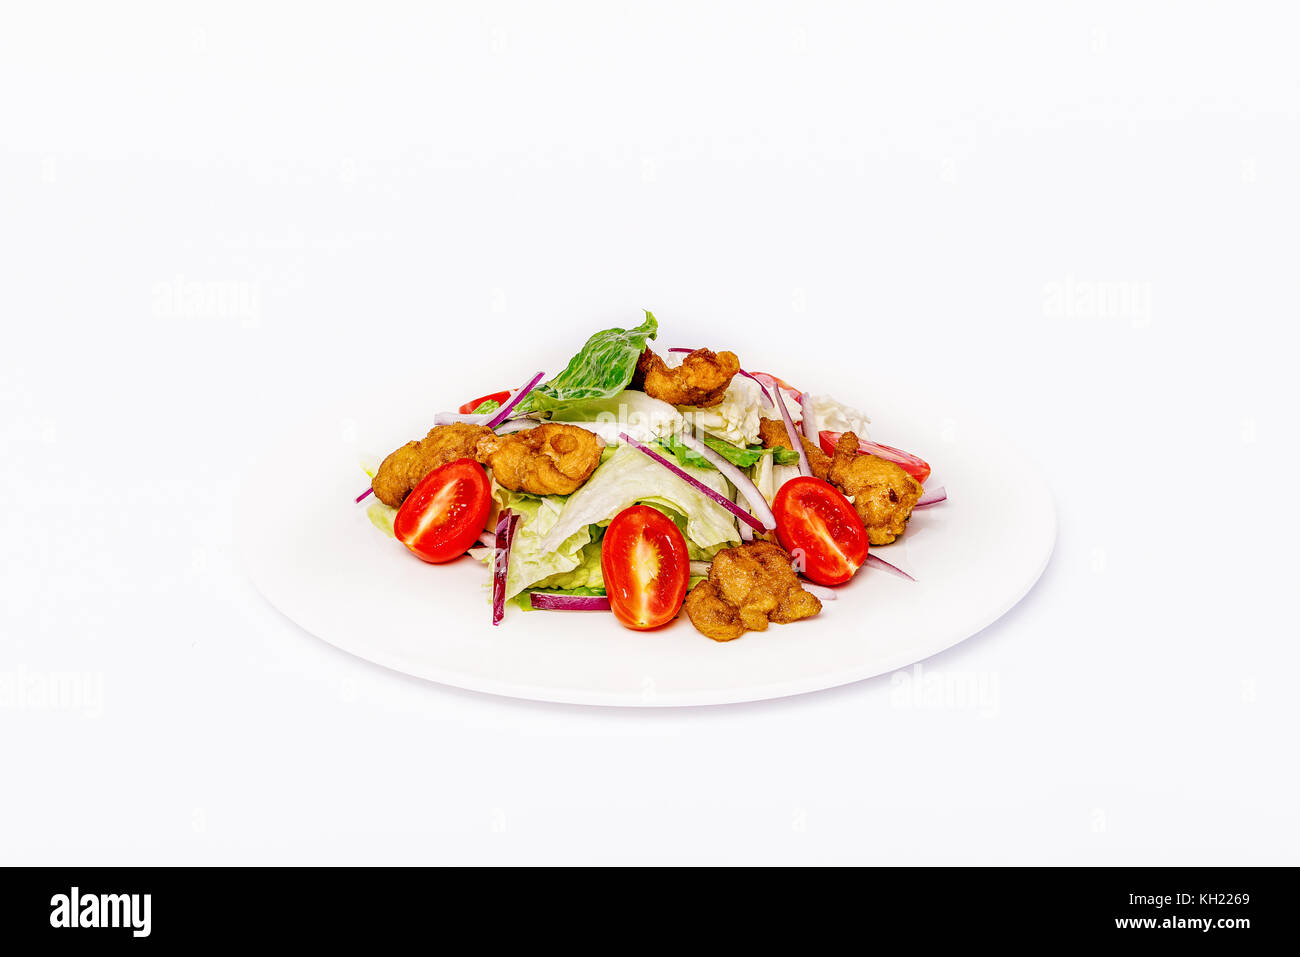 Pan-Asian salad, vegetables with fried chicken in batter. On a white plate on a white background. Stock Photo